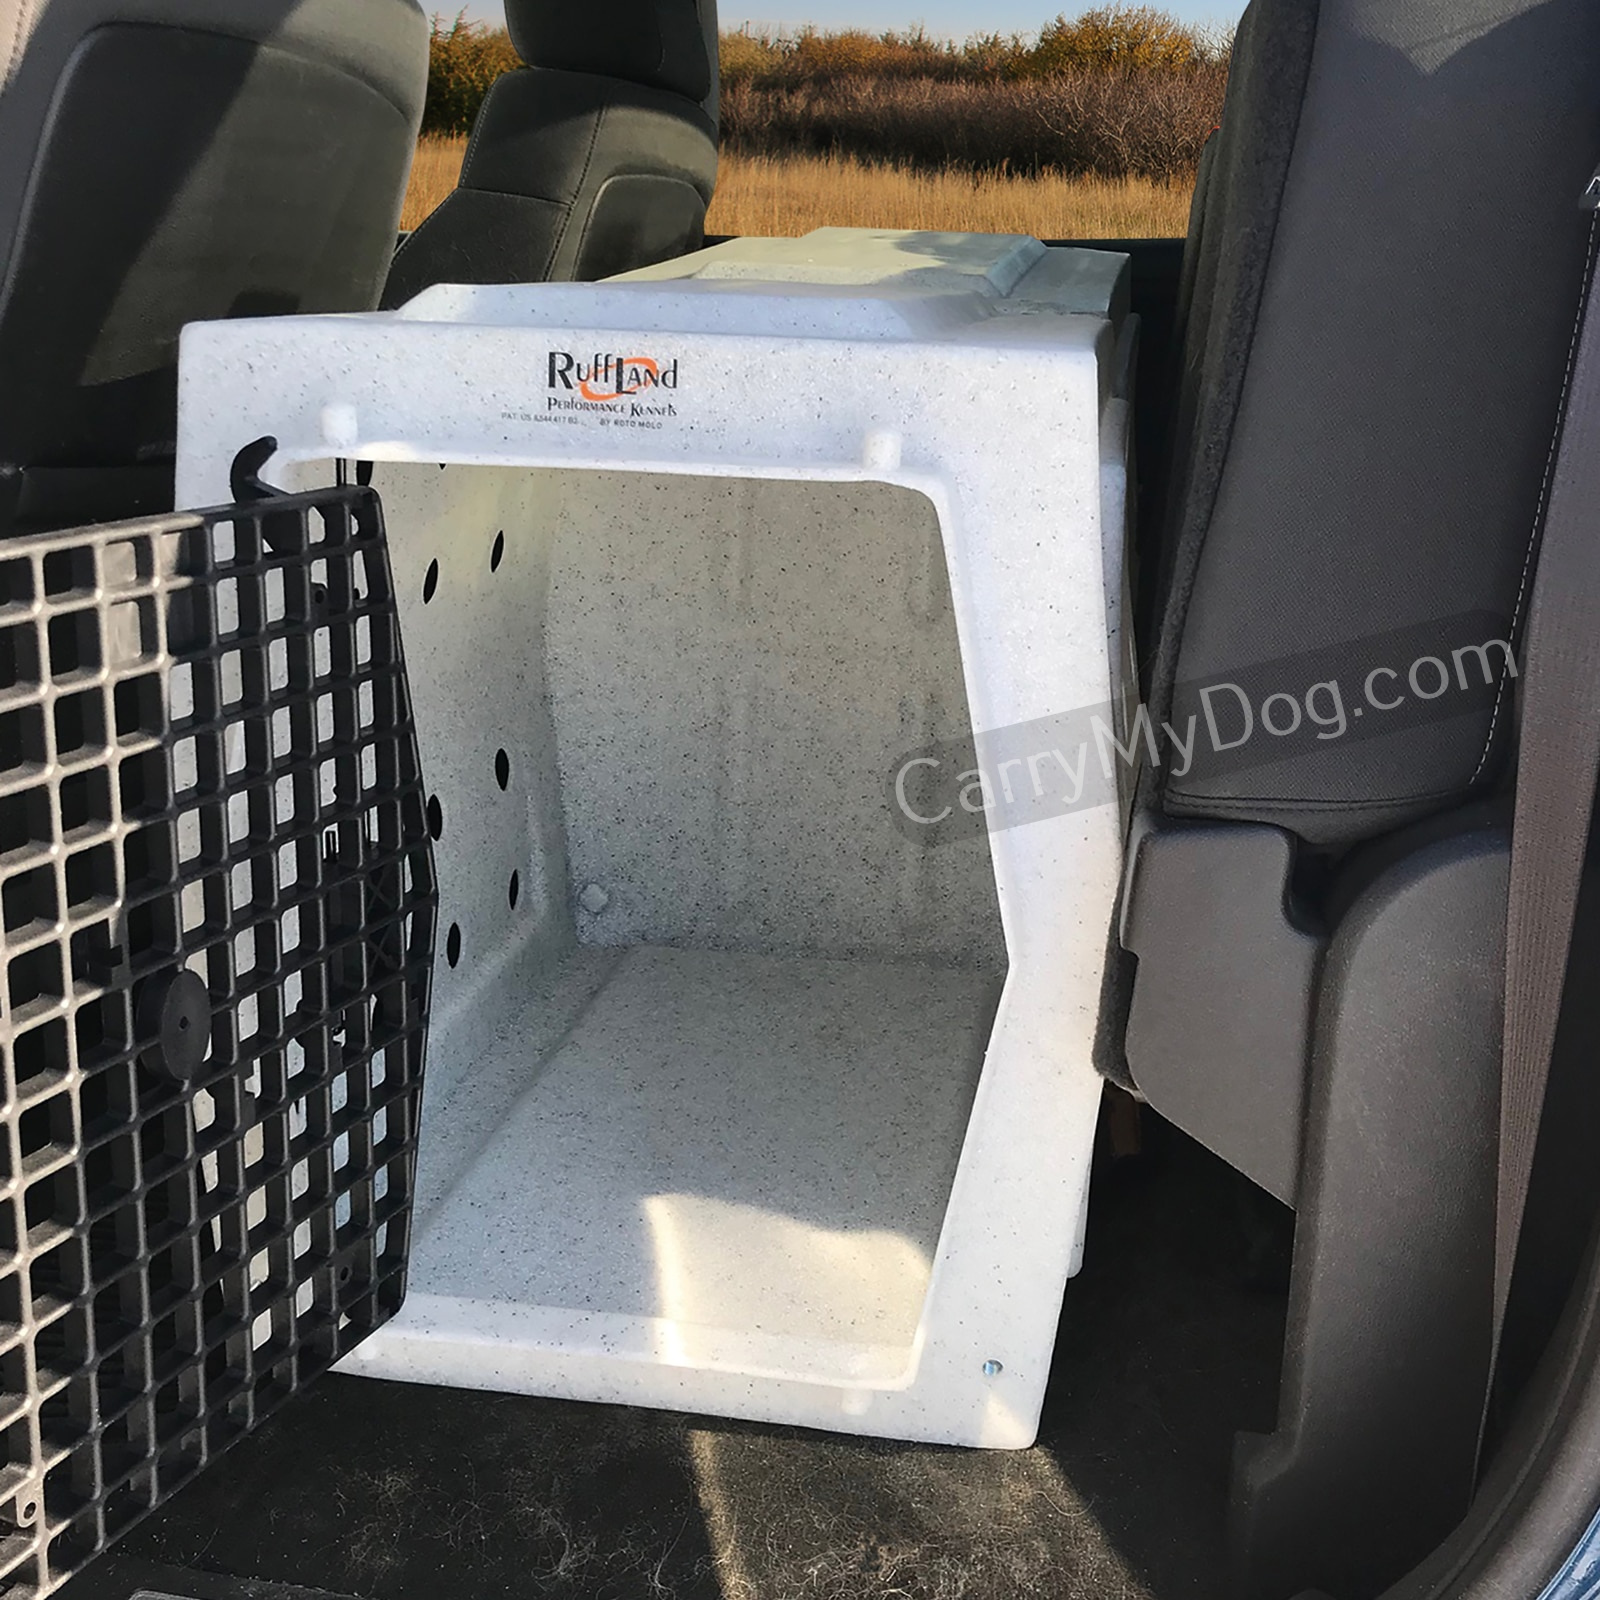 Backseat Rider Ruff land kennel from carrymydog.com